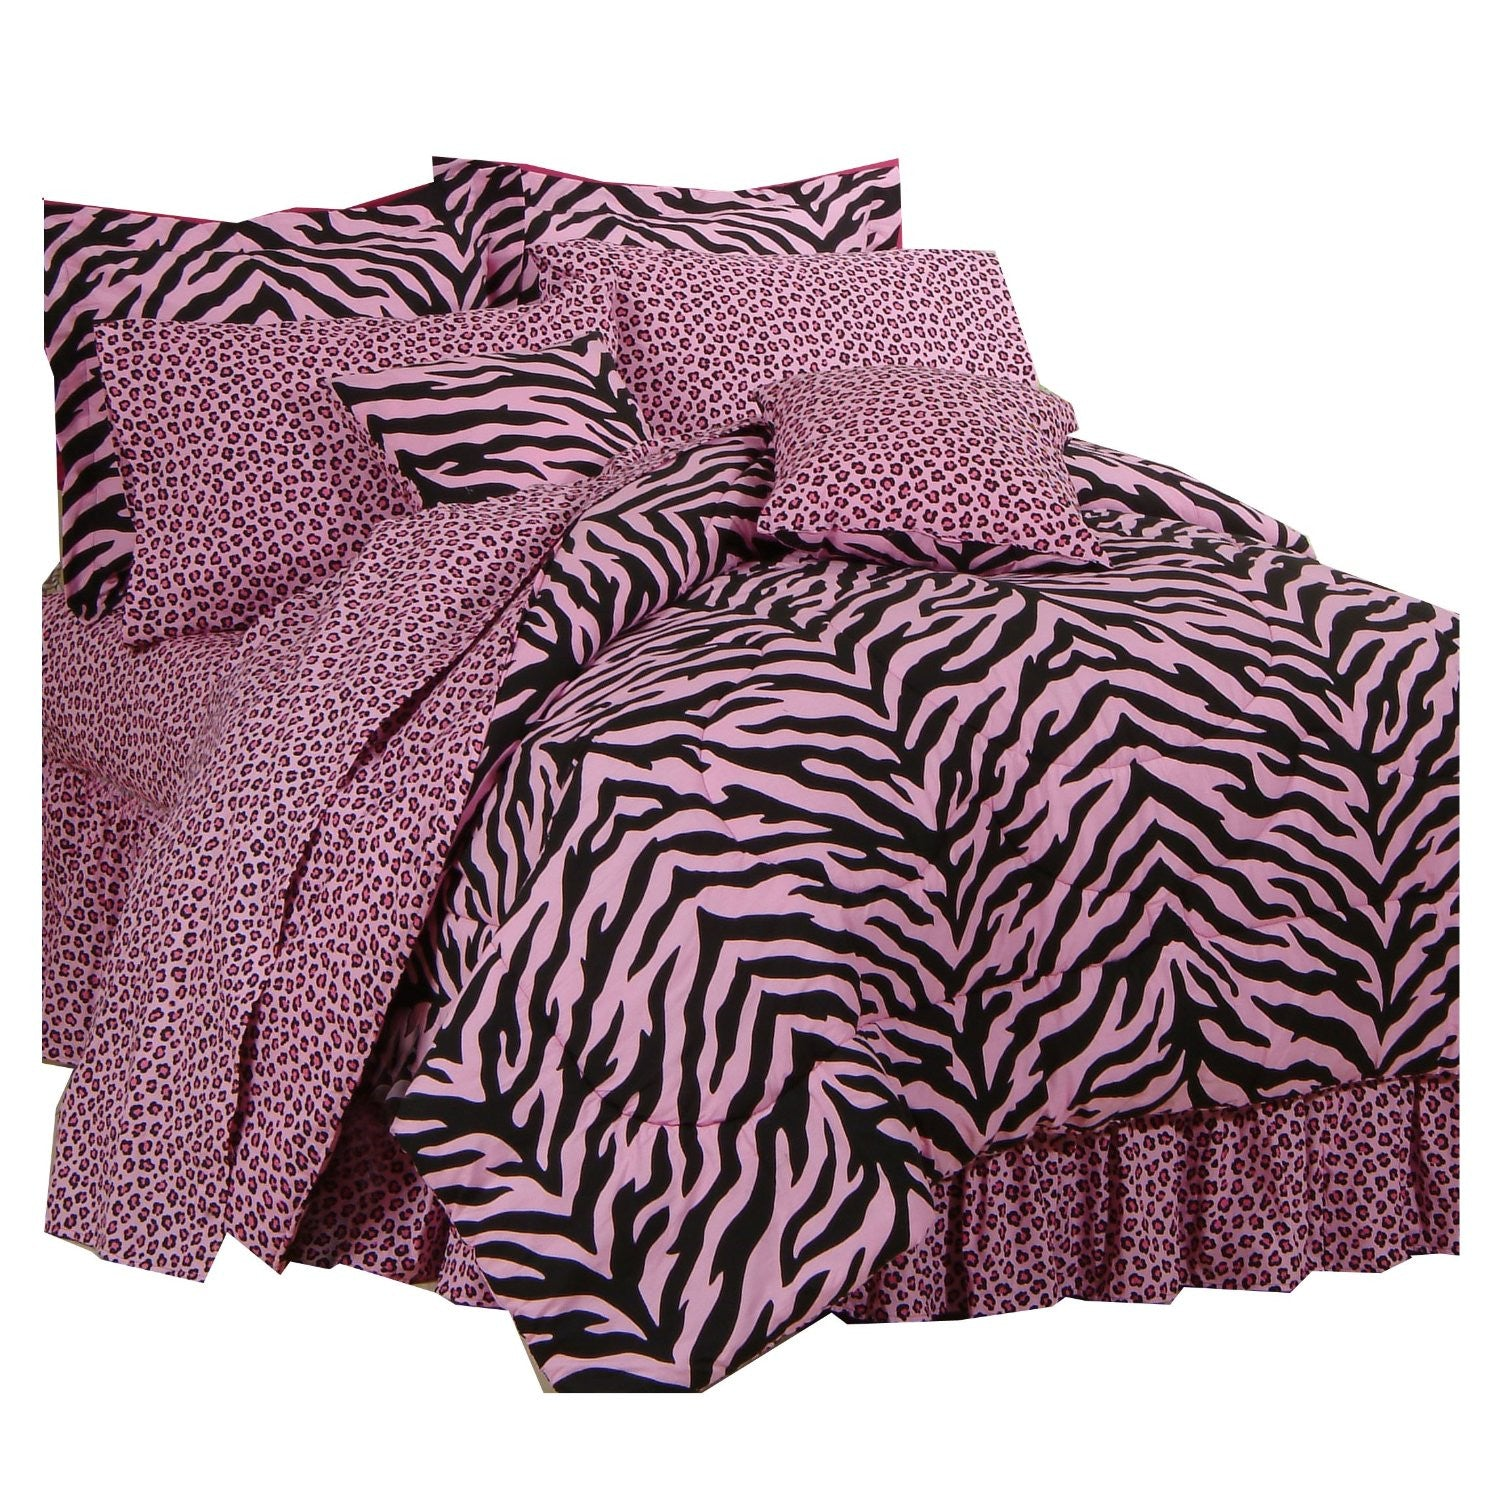 Pink Zebra Print Bed in a Bag (Queen) - Back40Trading2